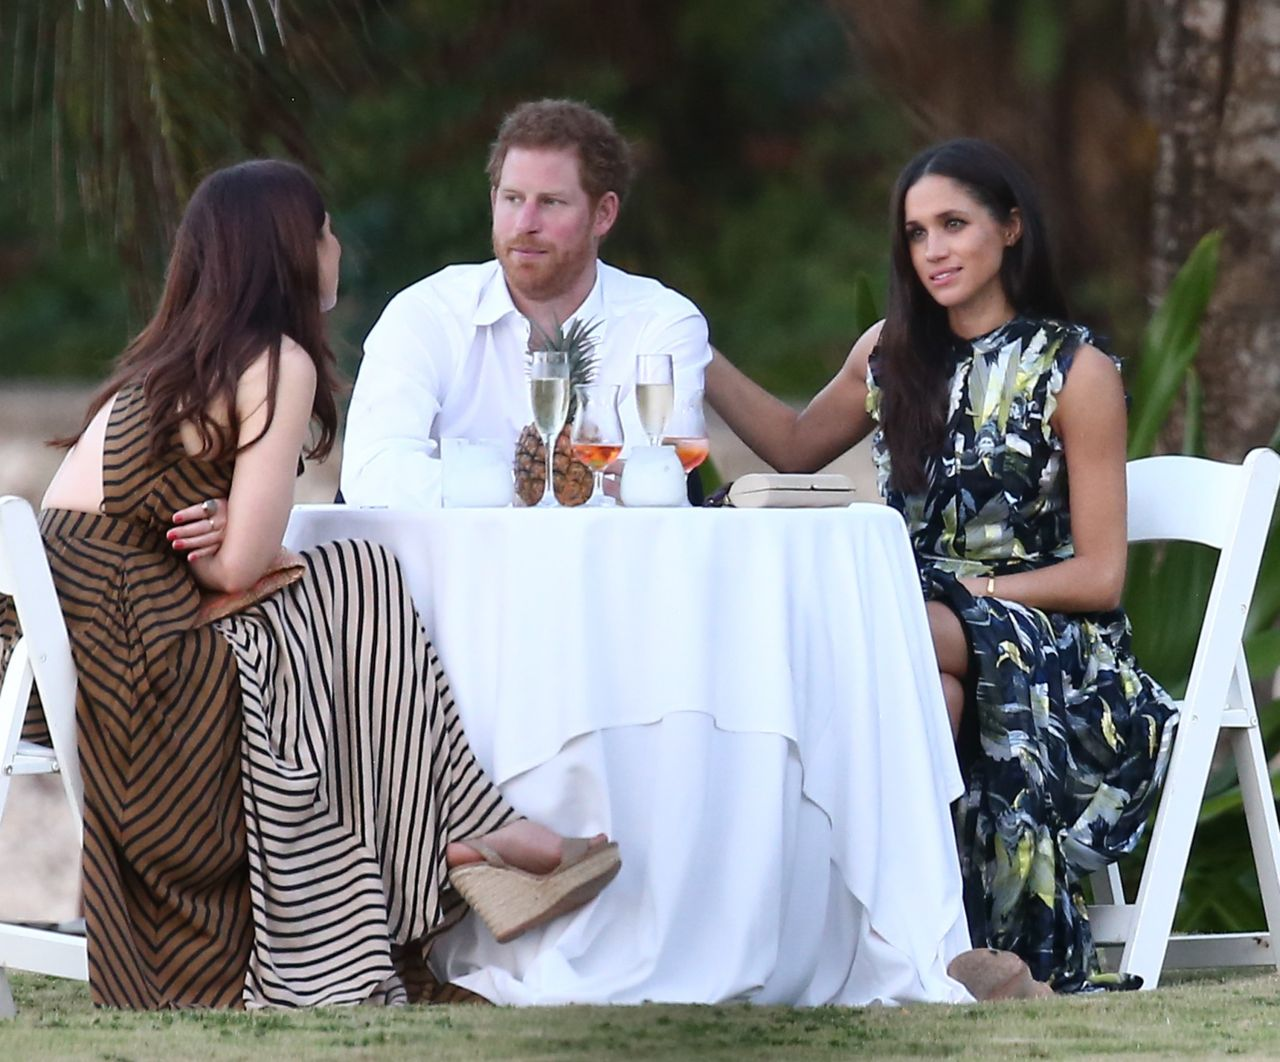 52334402 Royal couple Prince Harry and his girlfriend Meghan Markle were spotted attending a friend's wedding in Jamaica on March 3, 2017. Harry and Meghan enjoyed the festivities with the whole group before breaking off for some private conversation at a small table. Royal couple Prince Harry and his girlfriend Meghan Markle were spotted attending a friend's wedding near Jamaica on March 3, 2017. Harry and Meghan enjoyed the festivities with the whole group before breaking off for some private conversation at a small table. FameFlynet, Inc - Beverly Hills, CA, USA - +1 (310) 505-9876